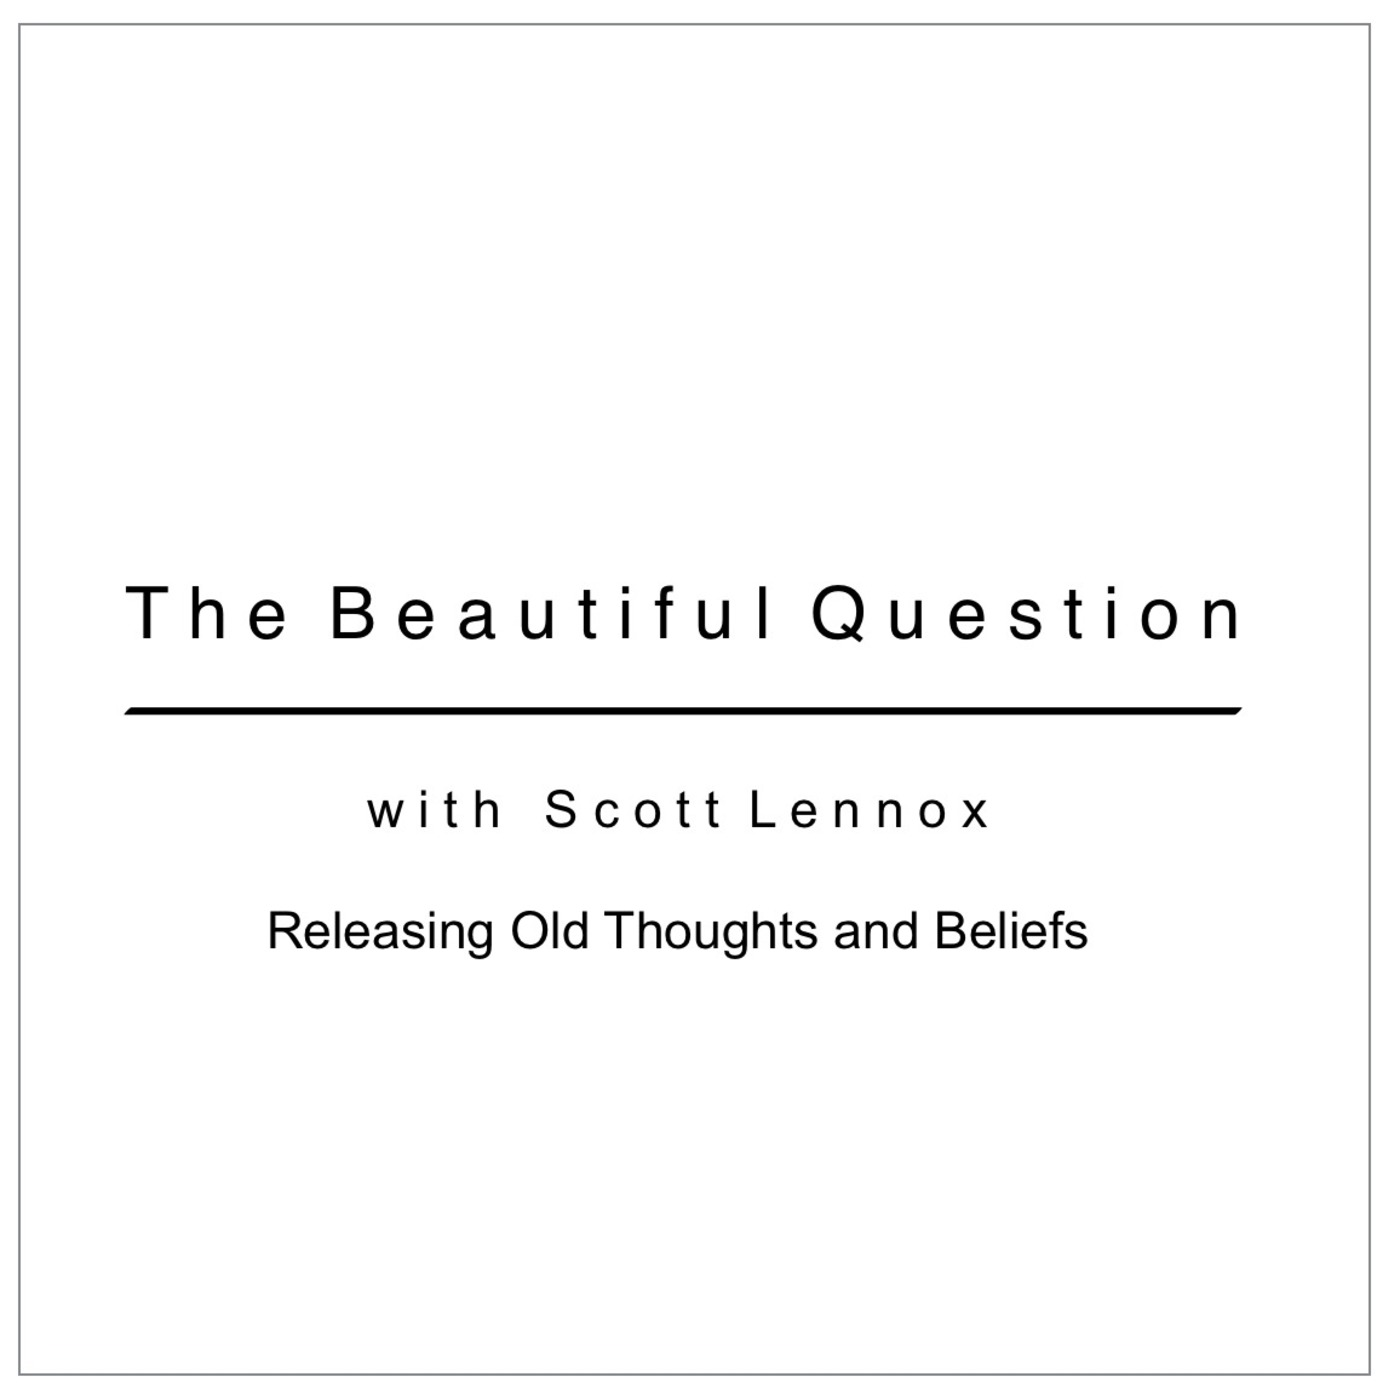 Releasing Old Thoughts and Beliefs